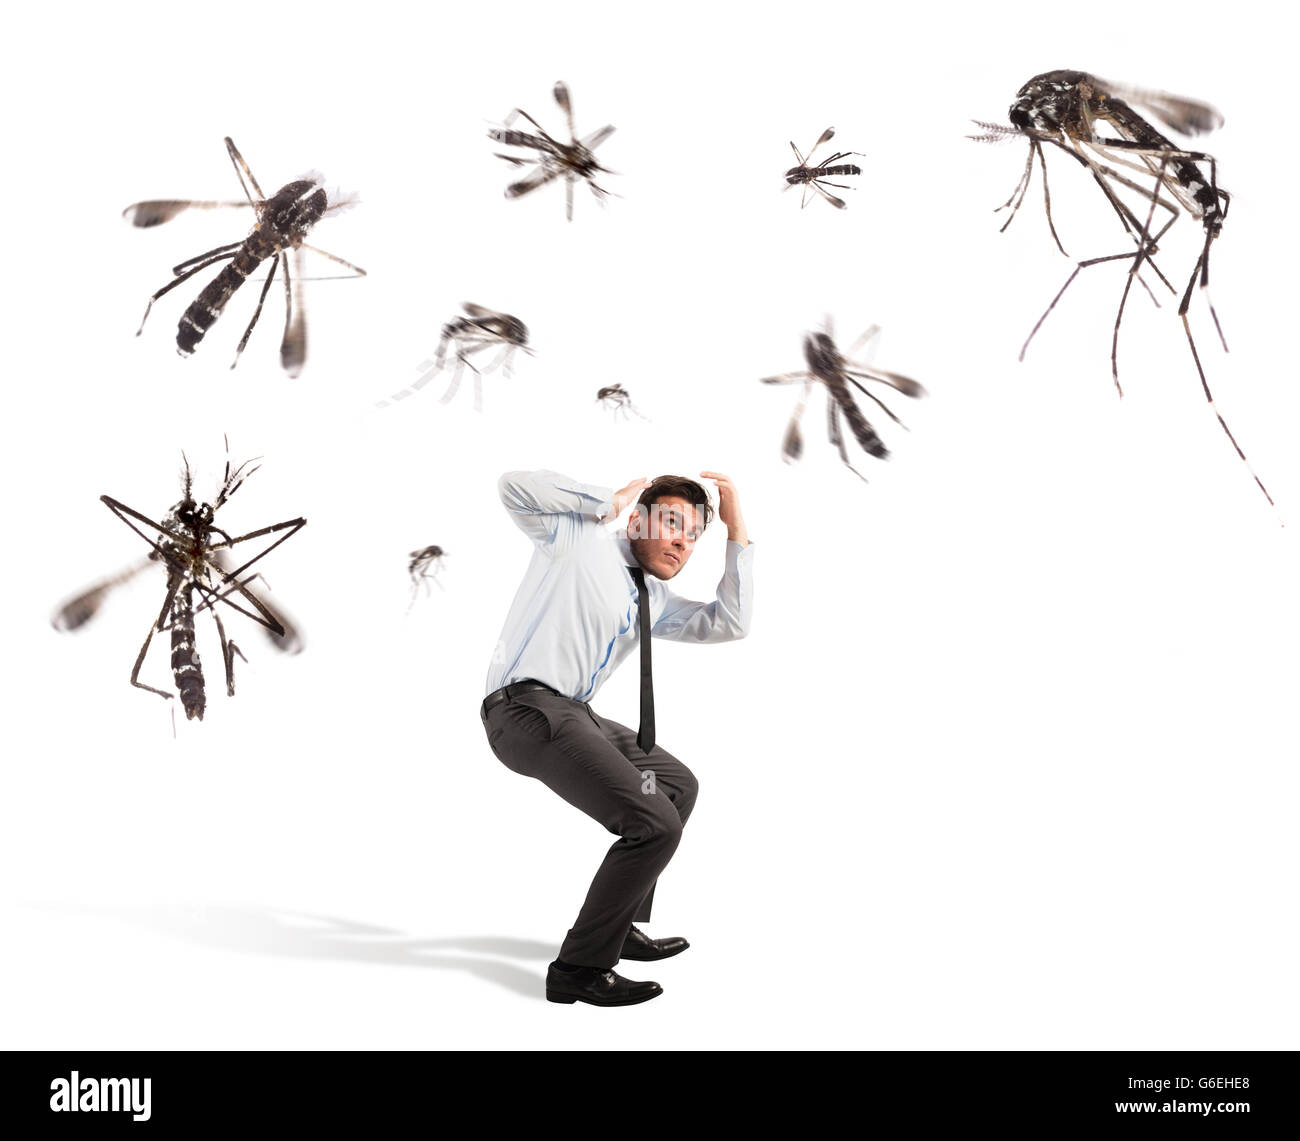 Mosquitoes attack - Stock Image